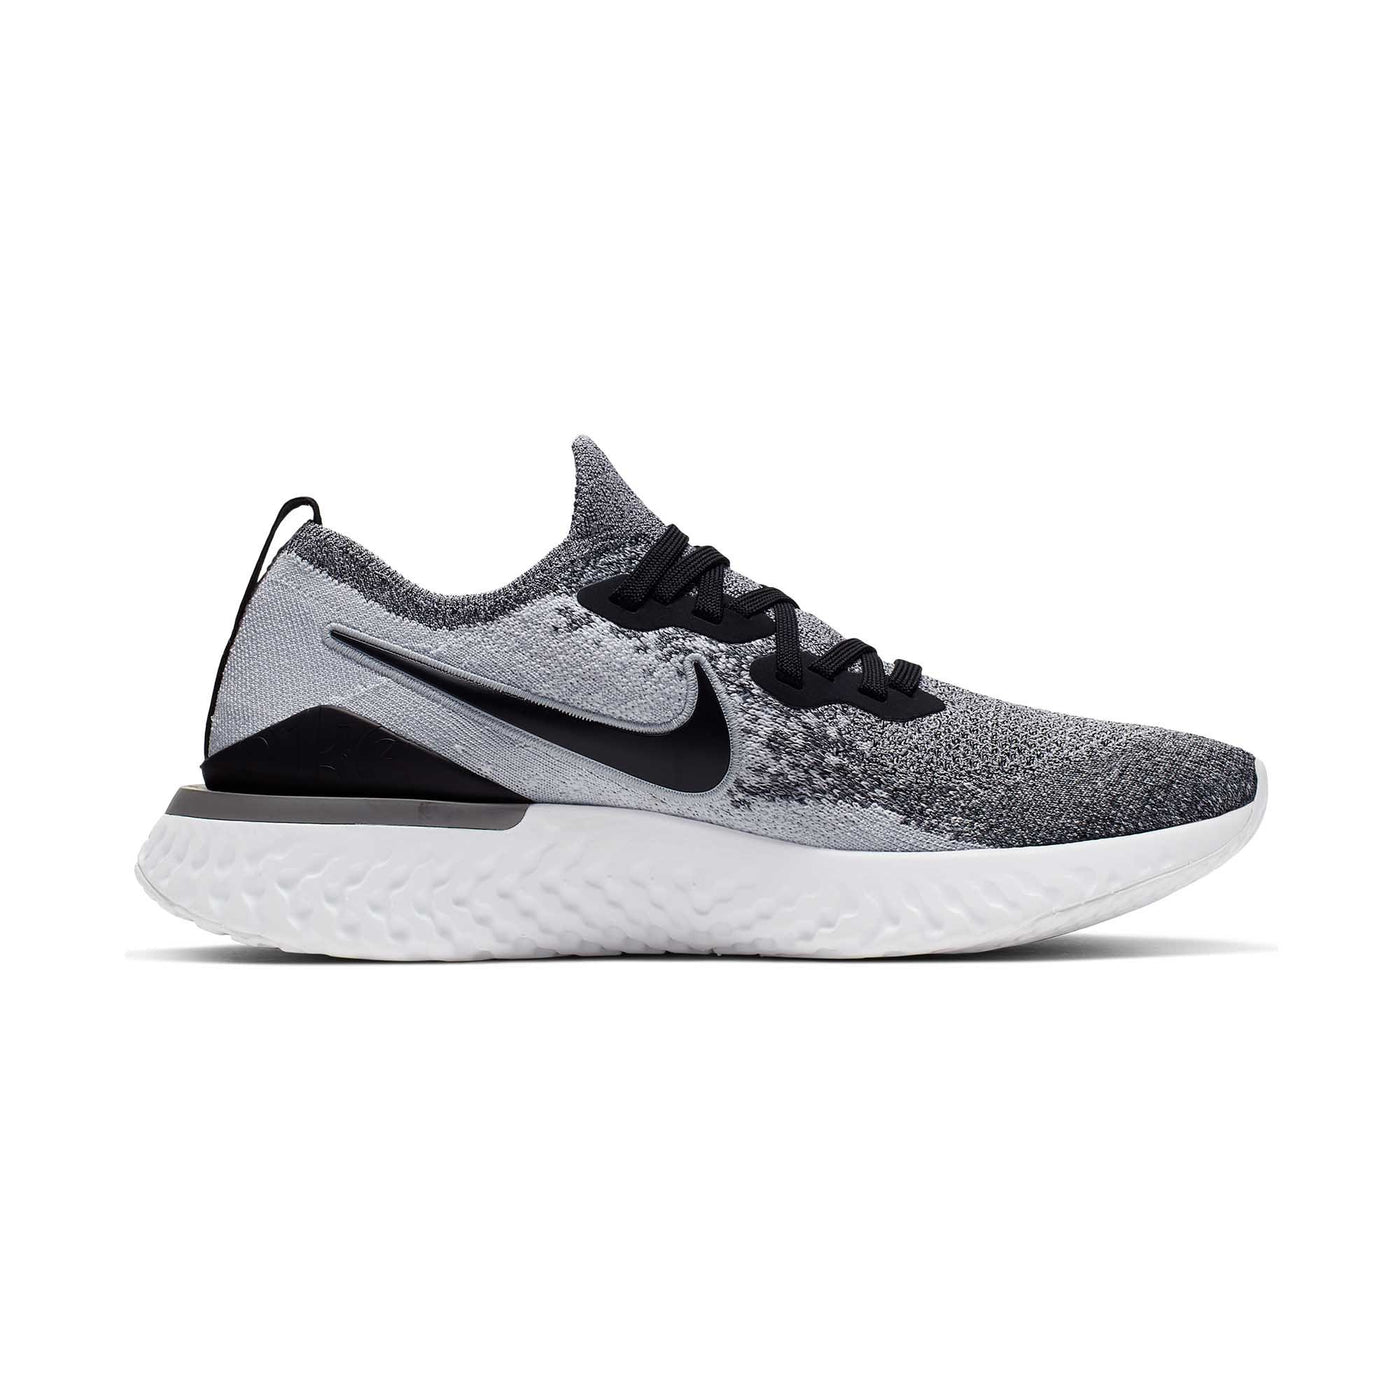 32377fc4a0b9f7 Women Epic React Flyknit 2 Running Shoes